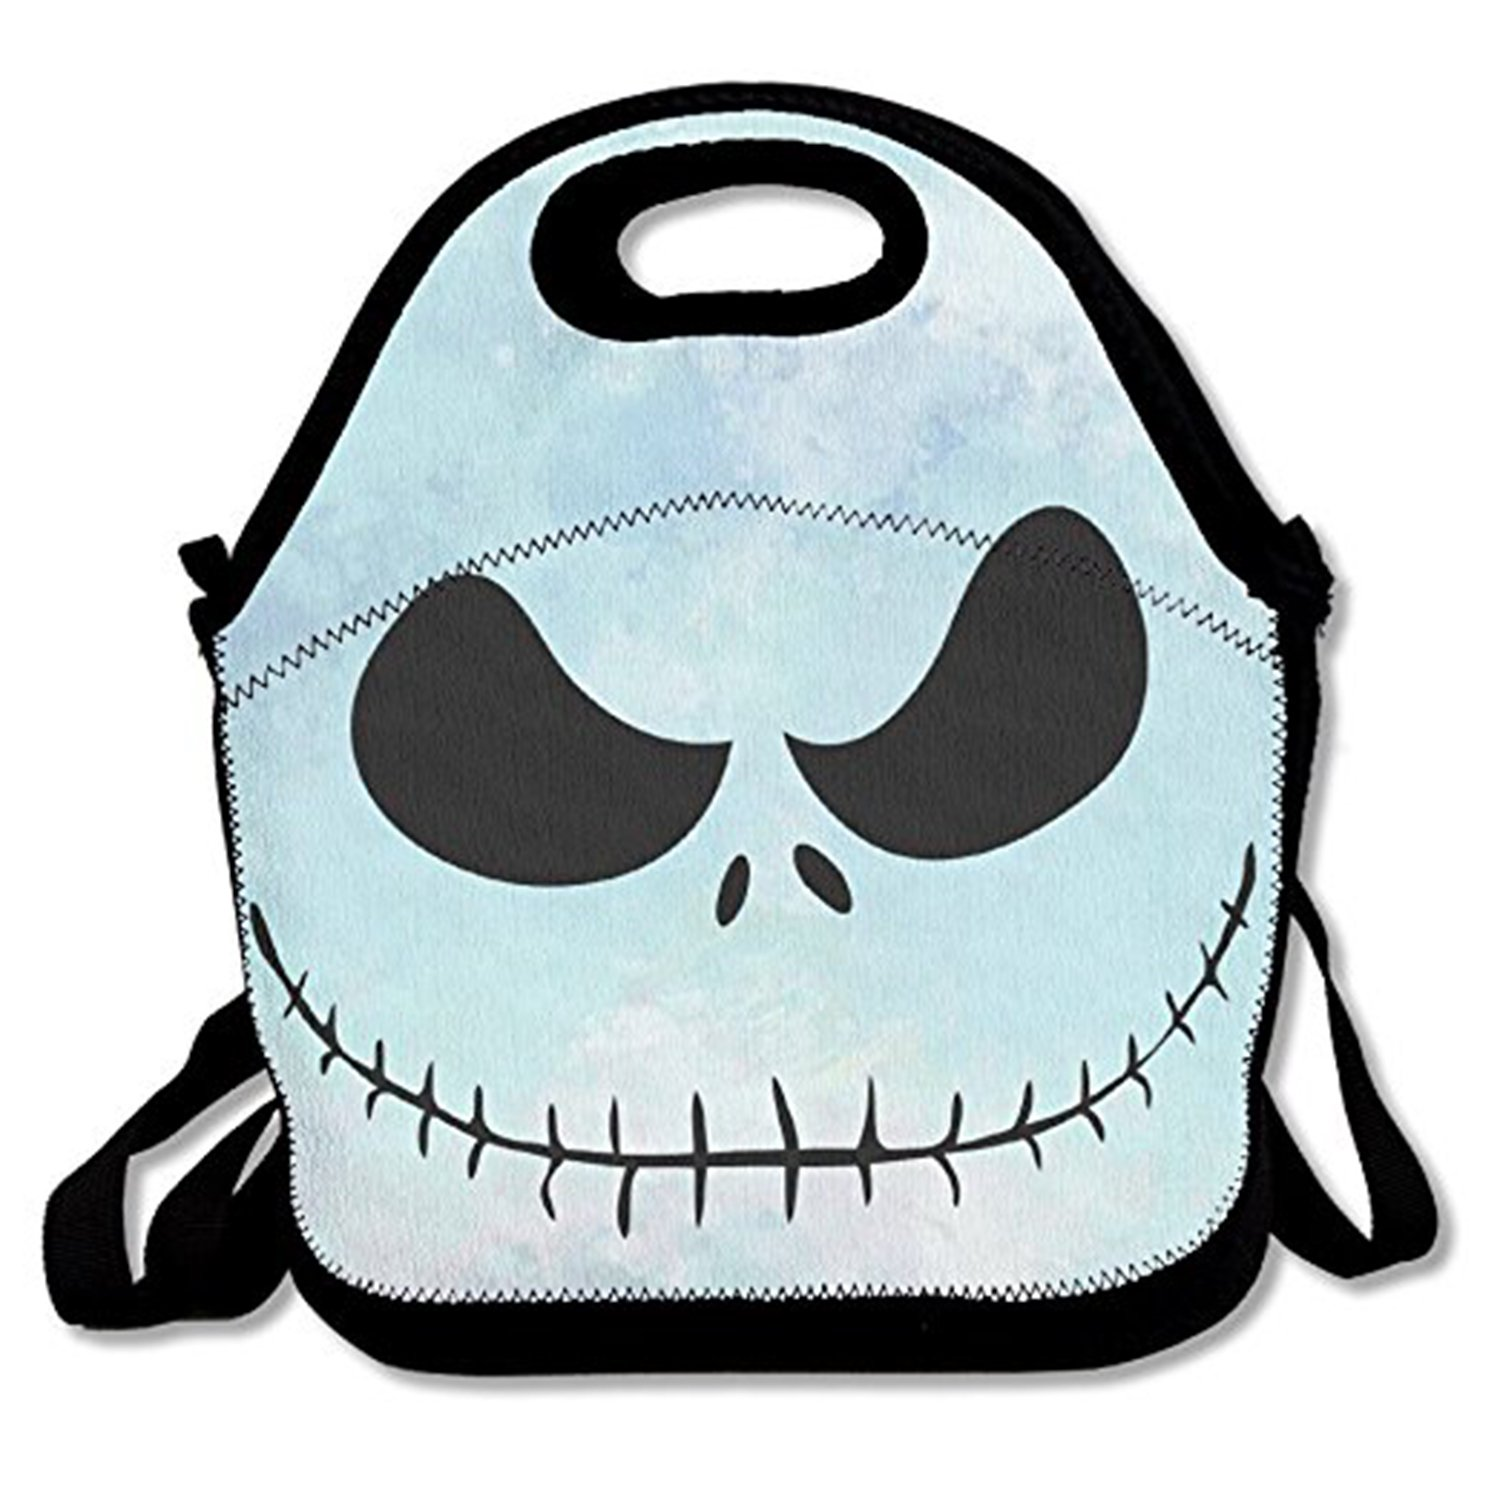 d6d1e82dc859 Cheap Skull Lunch, find Skull Lunch deals on line at Alibaba.com